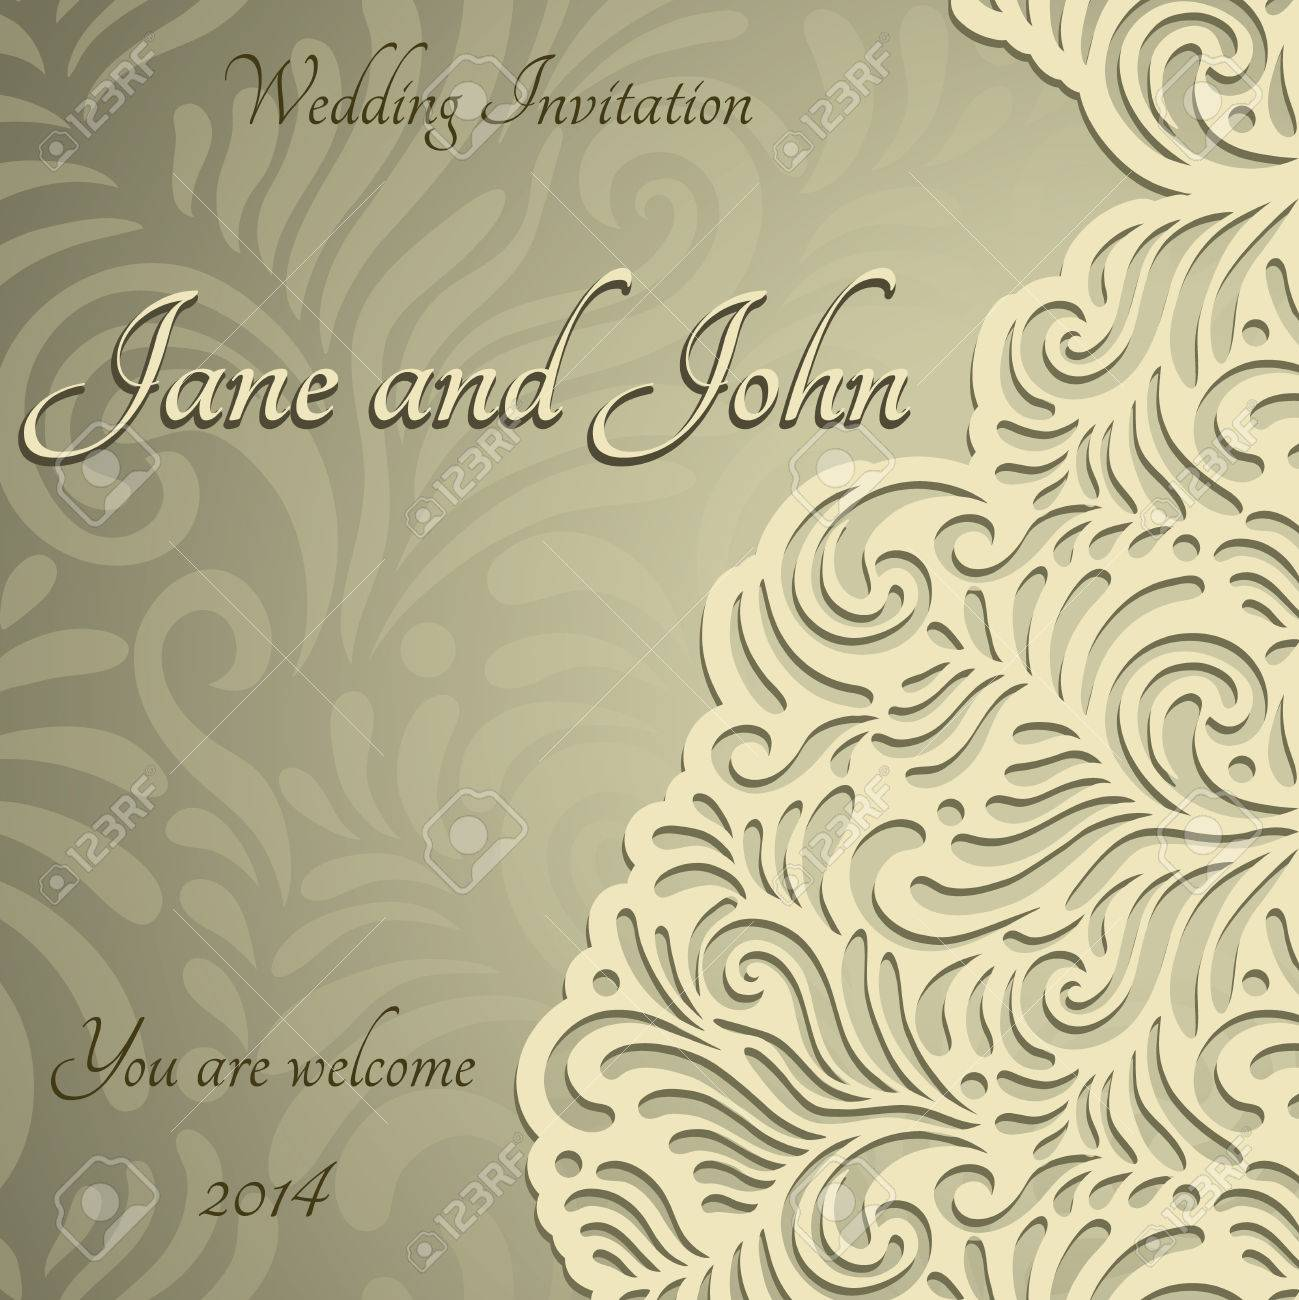 Elegant Stylish Wedding Invitation, Floral-lace Design Royalty Free ...